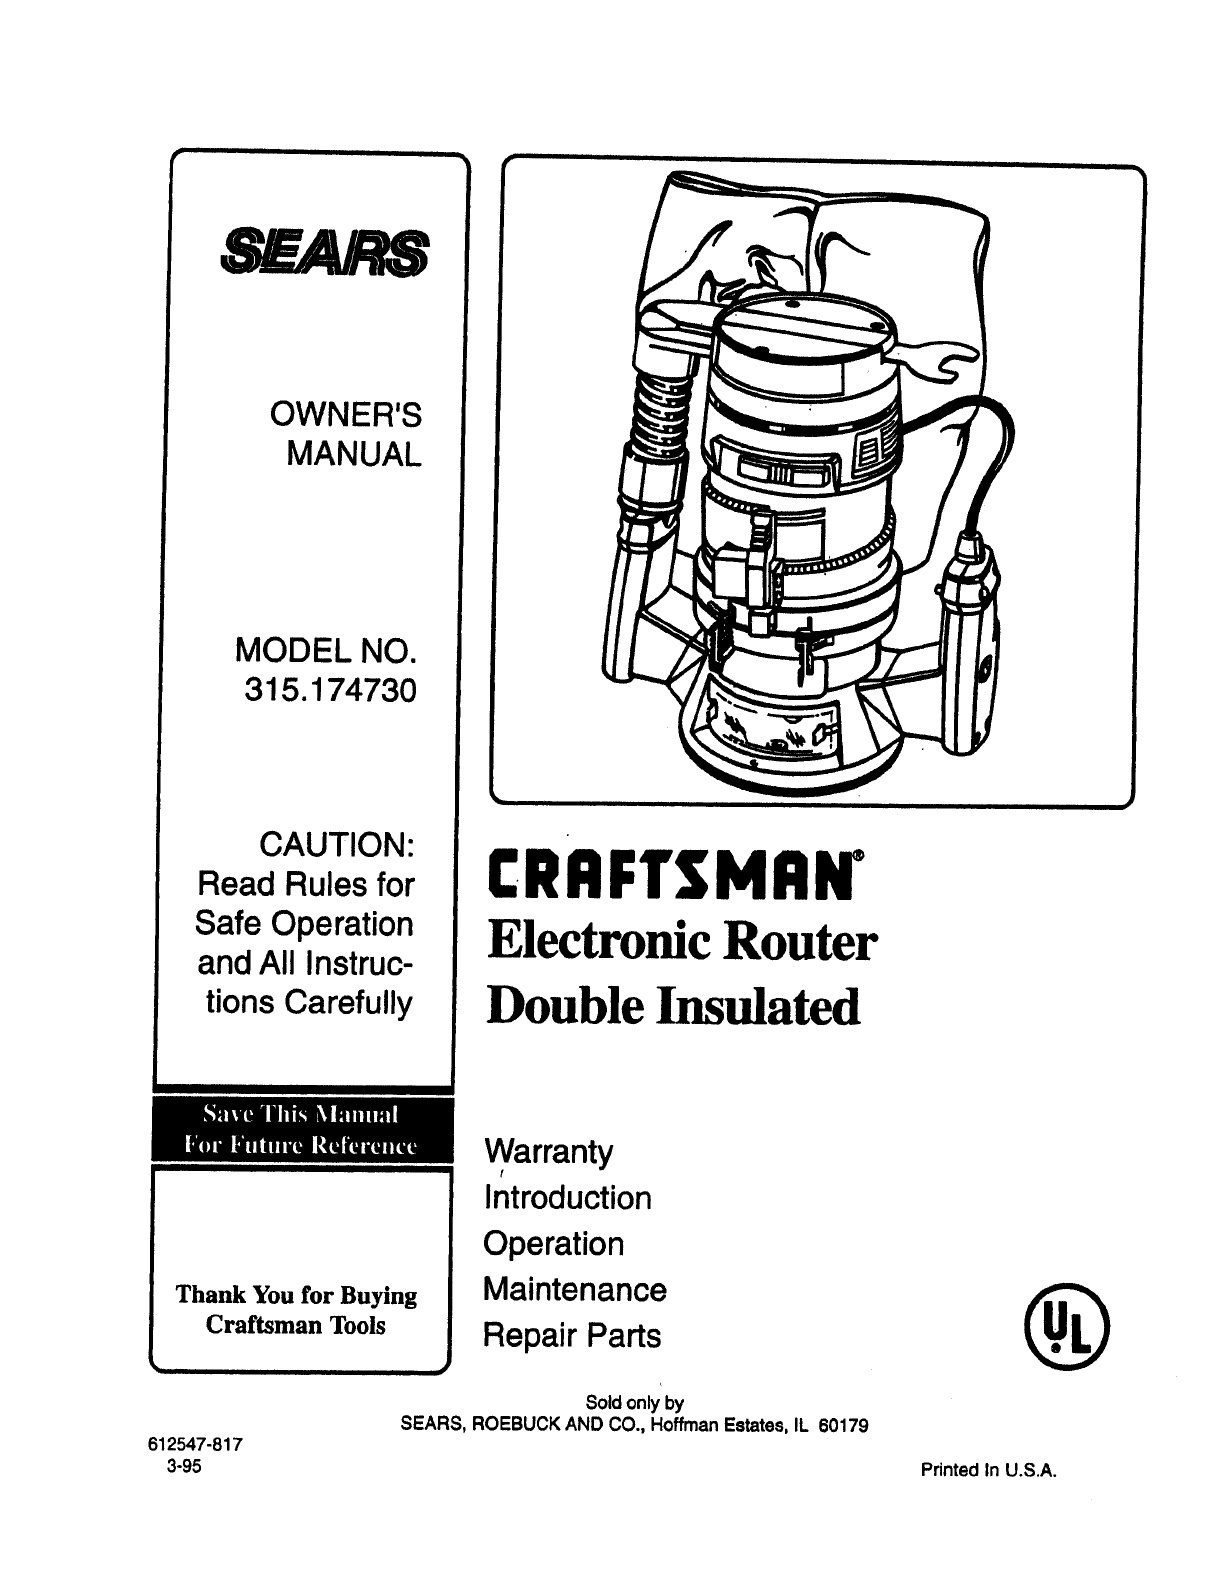 7d677a8b 287b 4a27 a1ac a6038dc8e4d1 bg1 sears router 315 17473 user guide manualsonline com Craftsman Plunge Router Models at pacquiaovsvargaslive.co